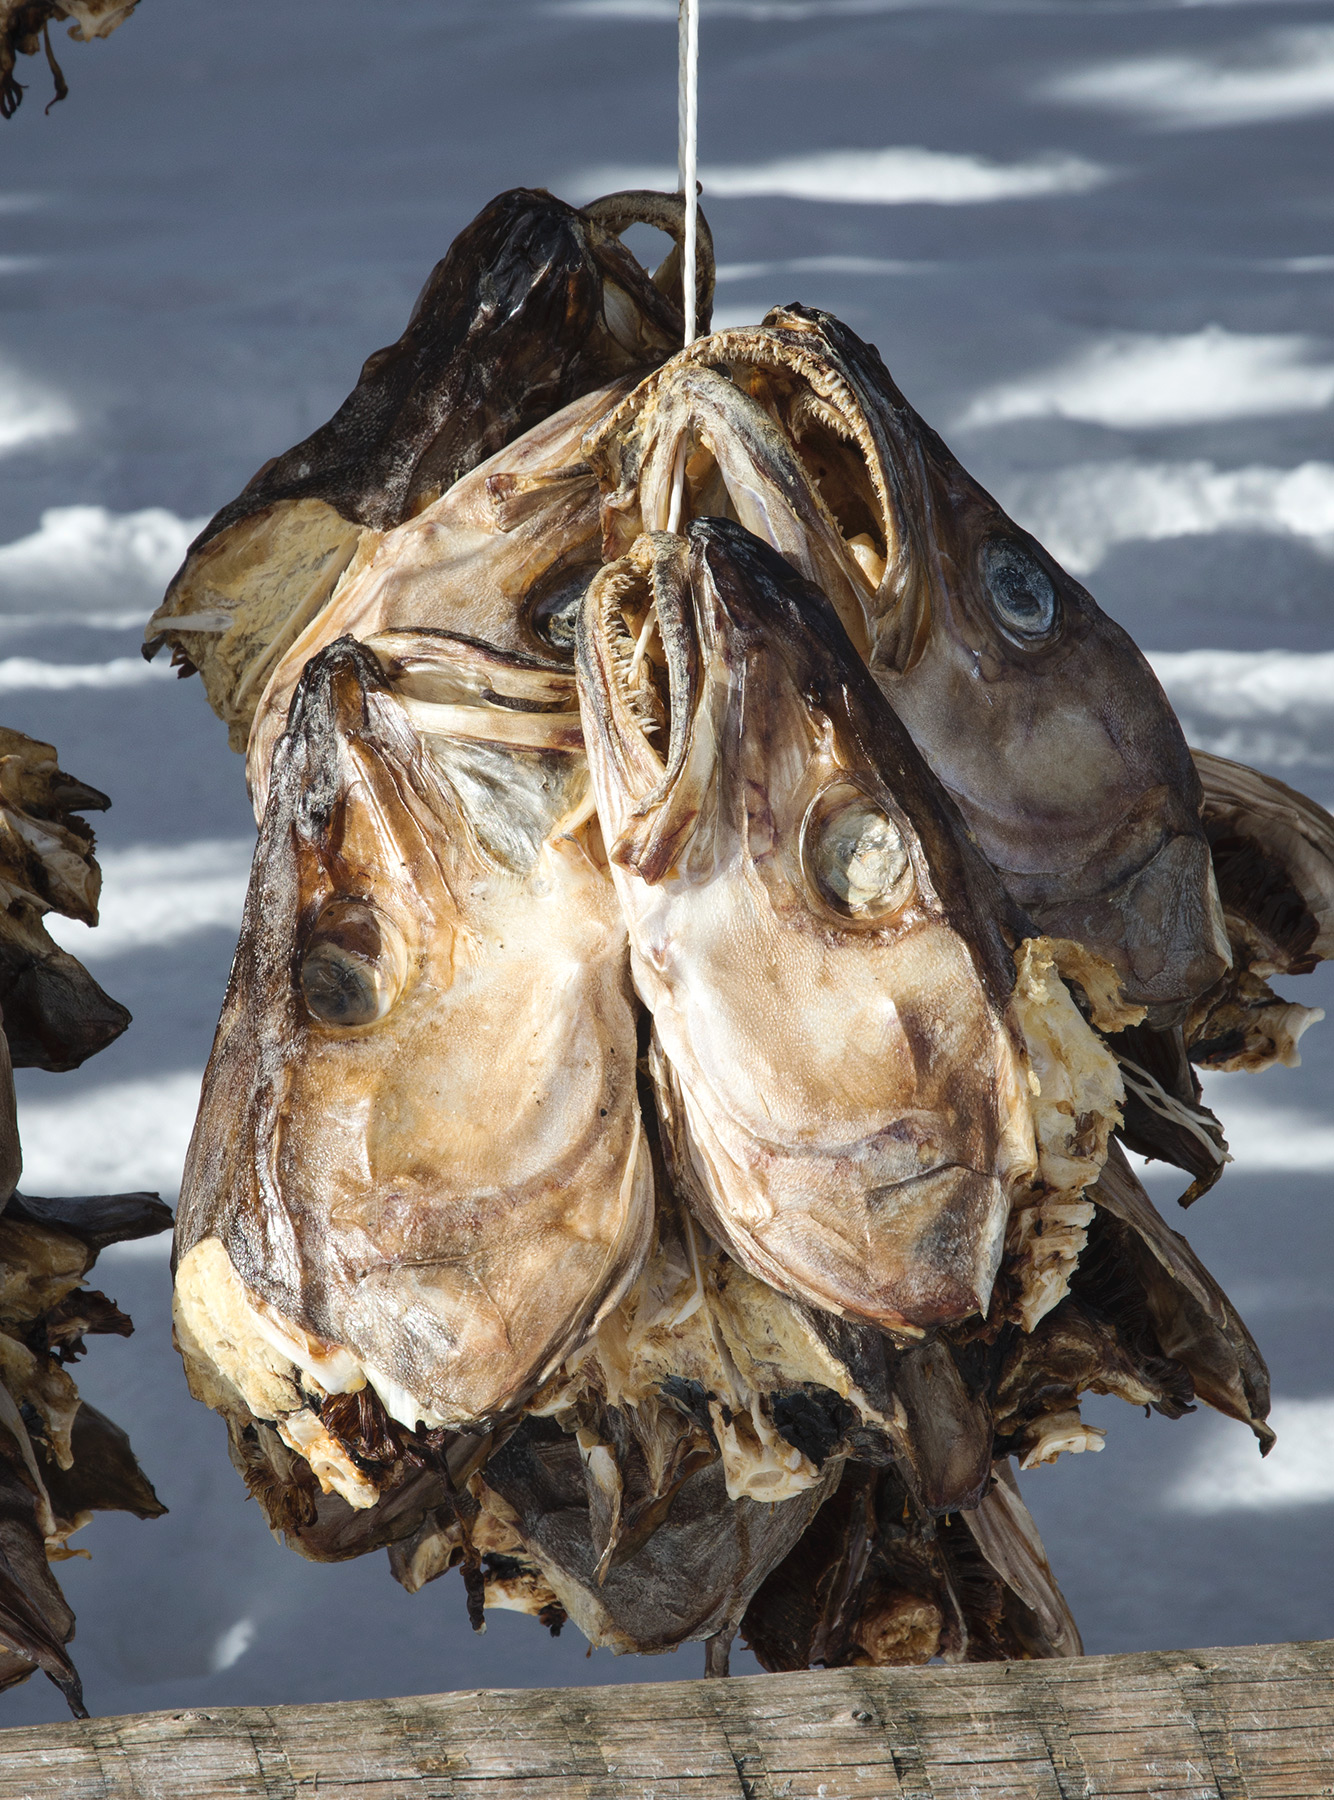 Fish heads on string